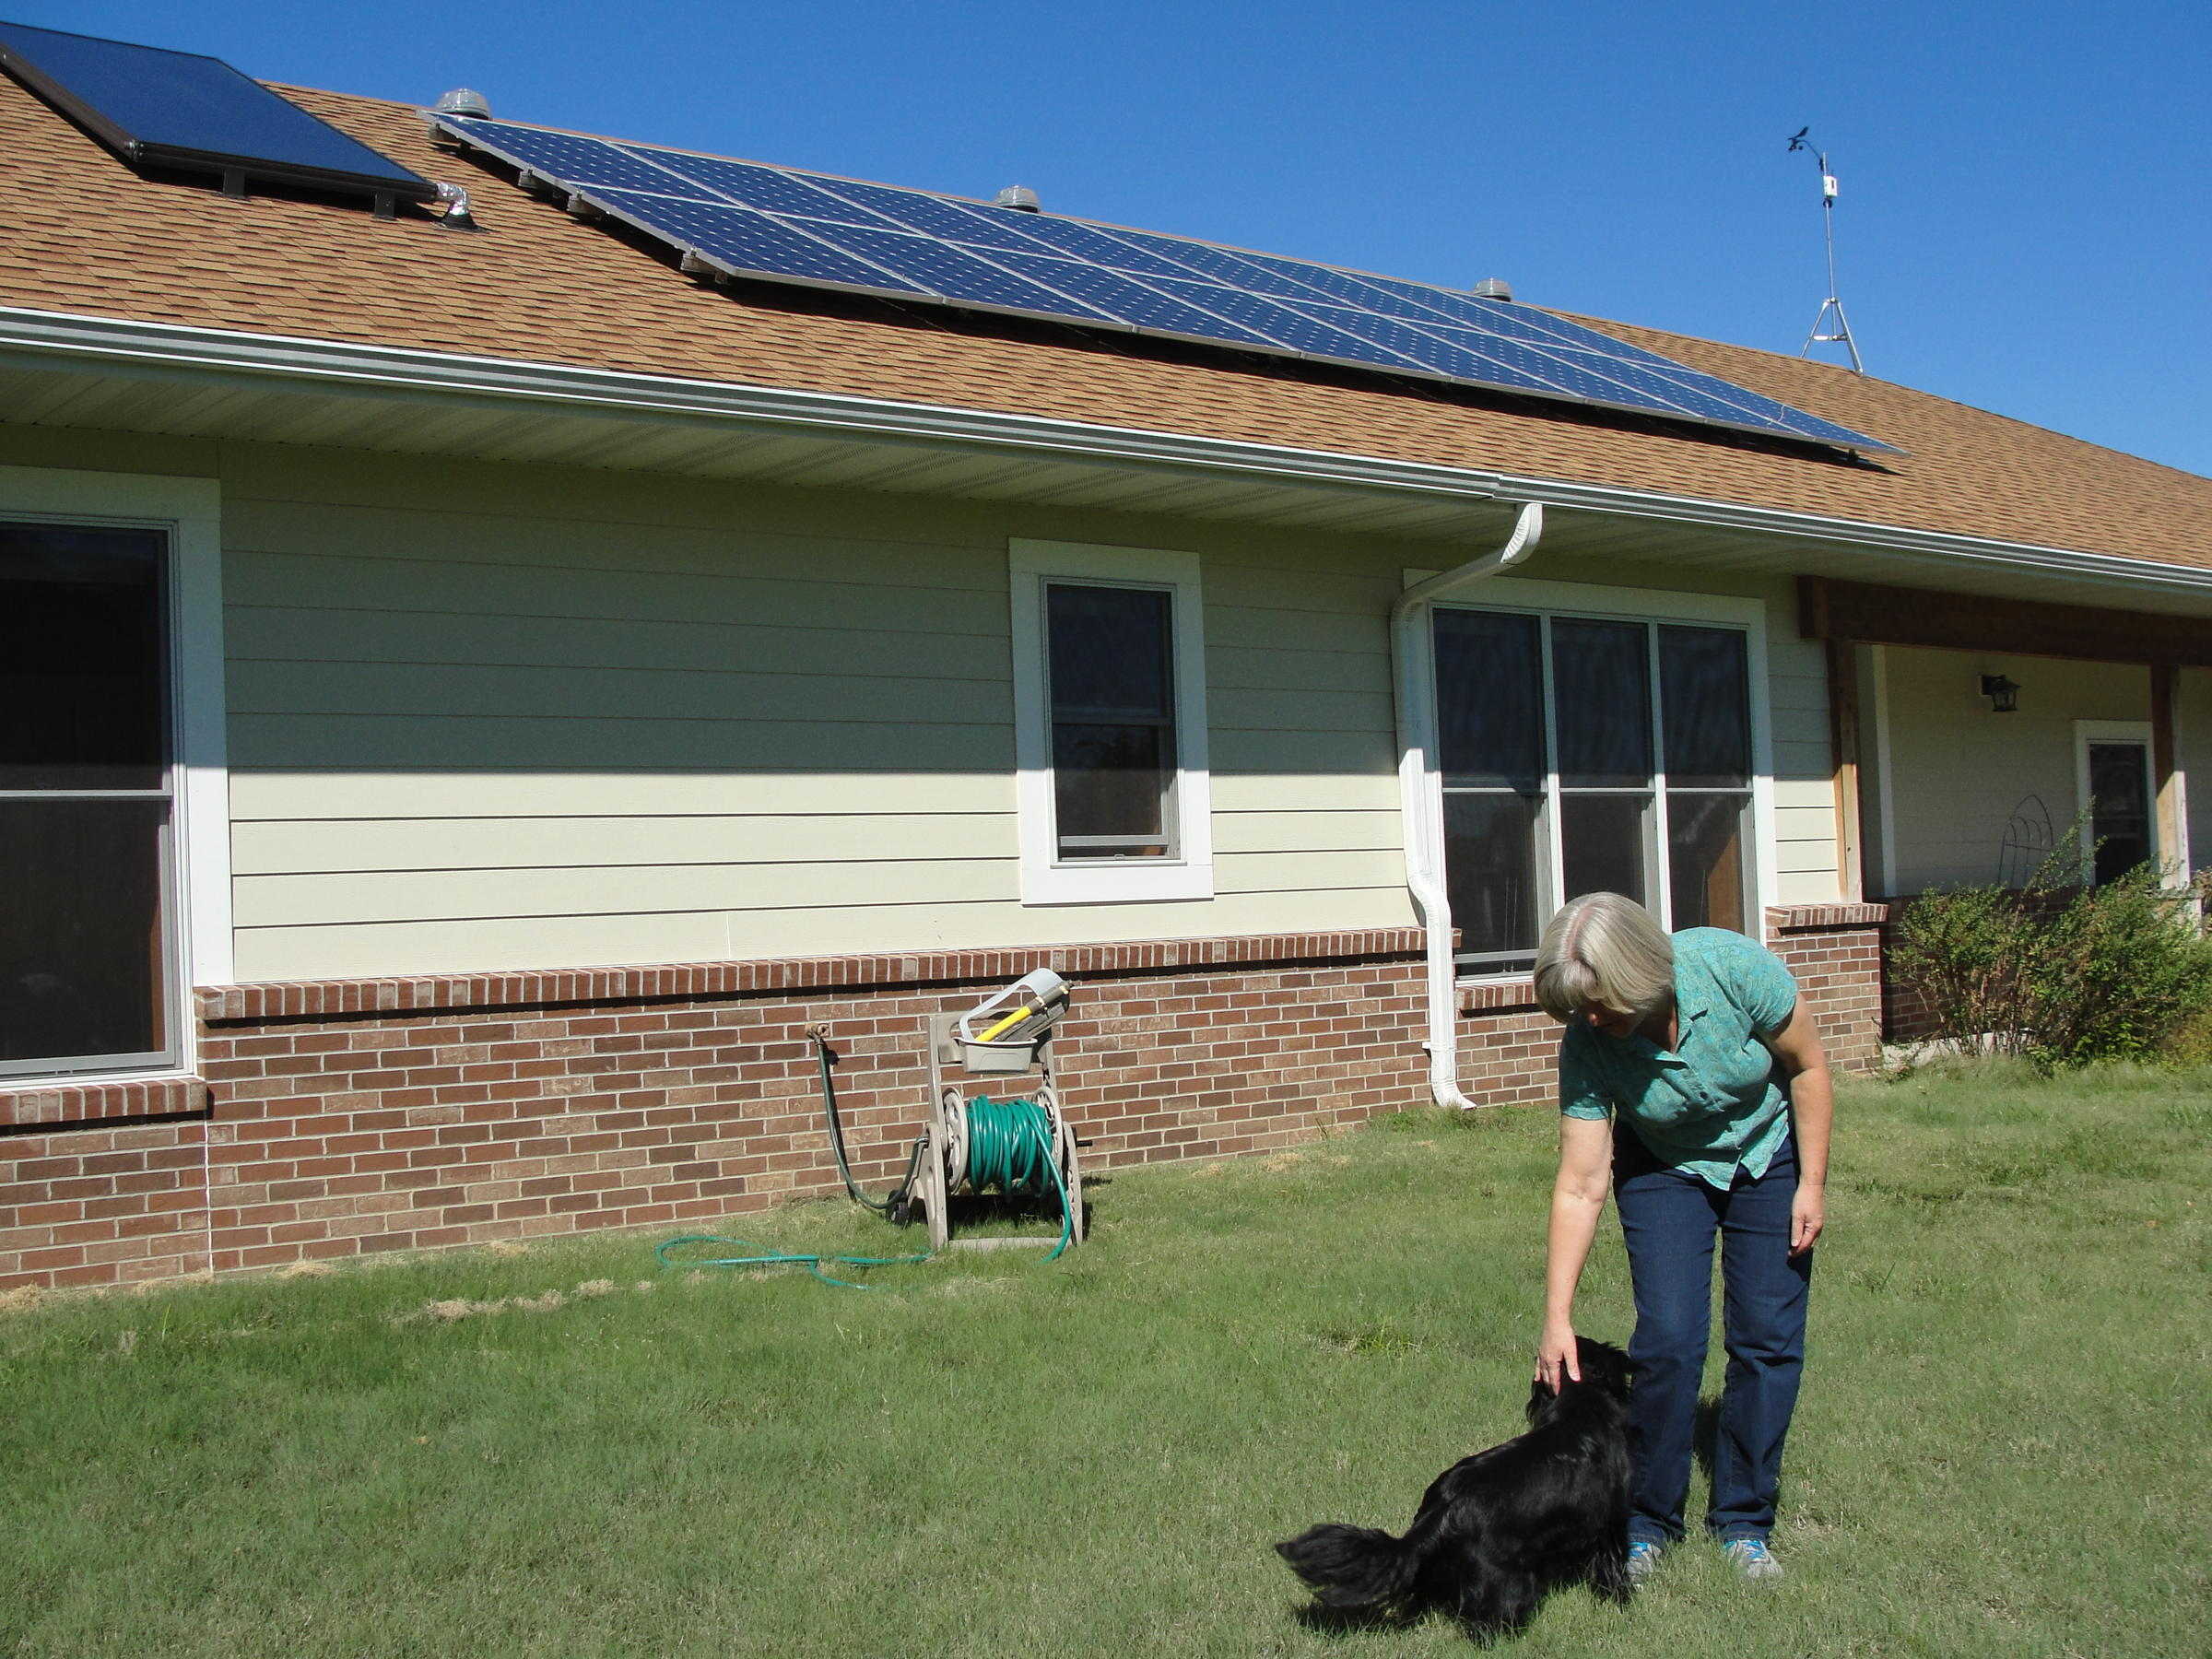 couple tries to stay energy efficient in fulton kbia